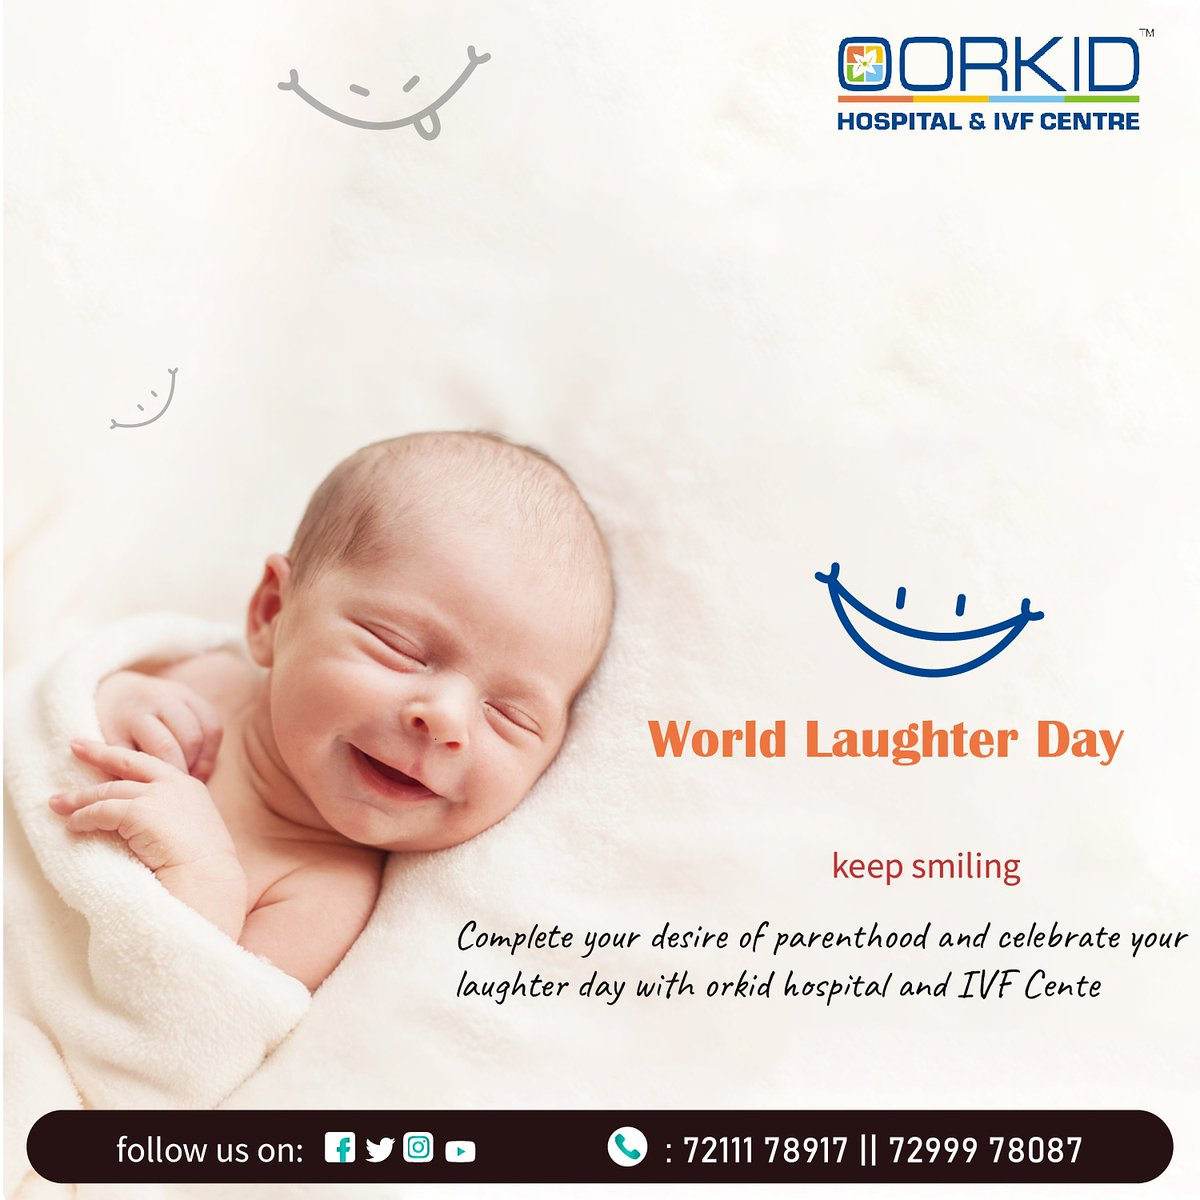 Complete your desire of parenthood and celebrate your laughter day with orkid hospital and IVF Center  #laughterday #WorldLaughterDay  #worldlaughterday2020